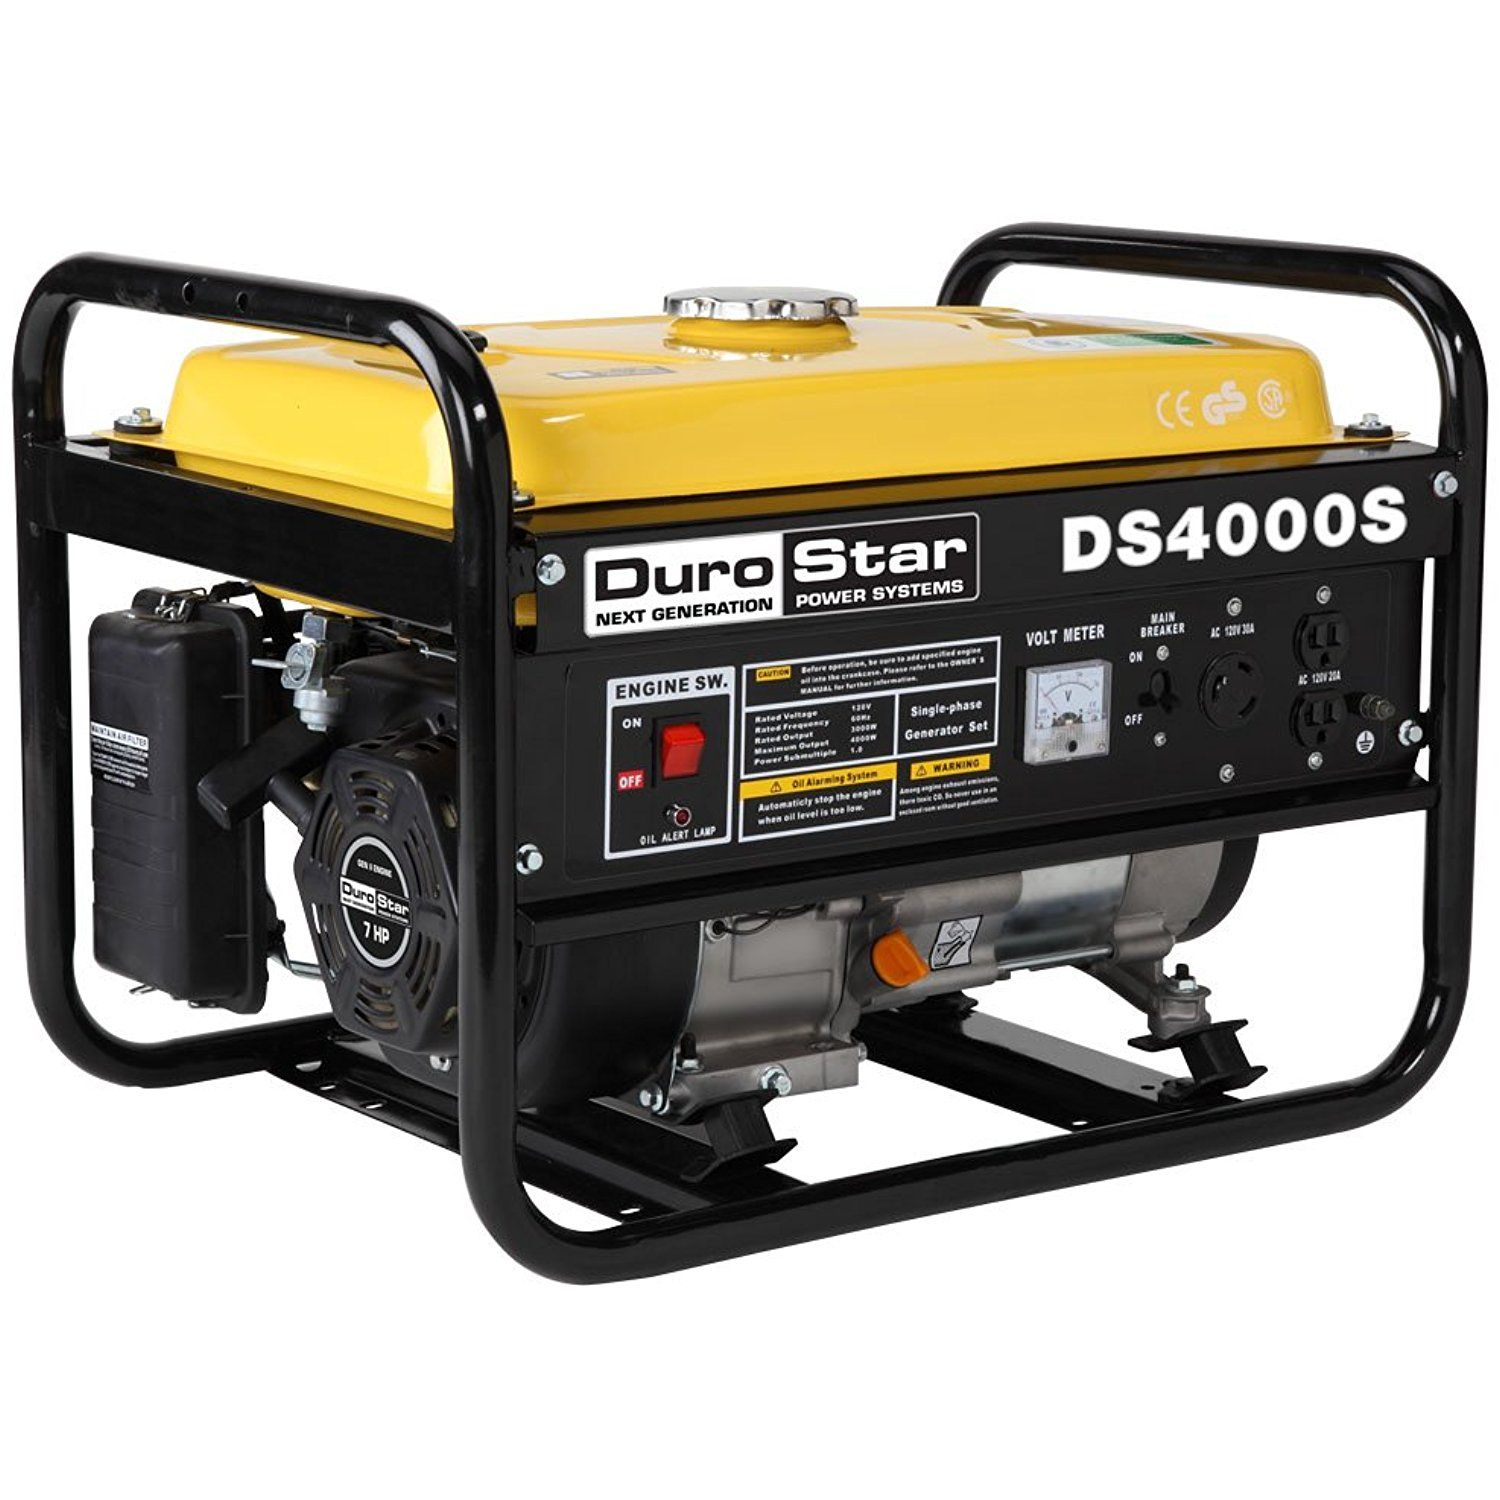 DuroStar DS4000S 3300 Running Watts 4000 Starting Watts Gas